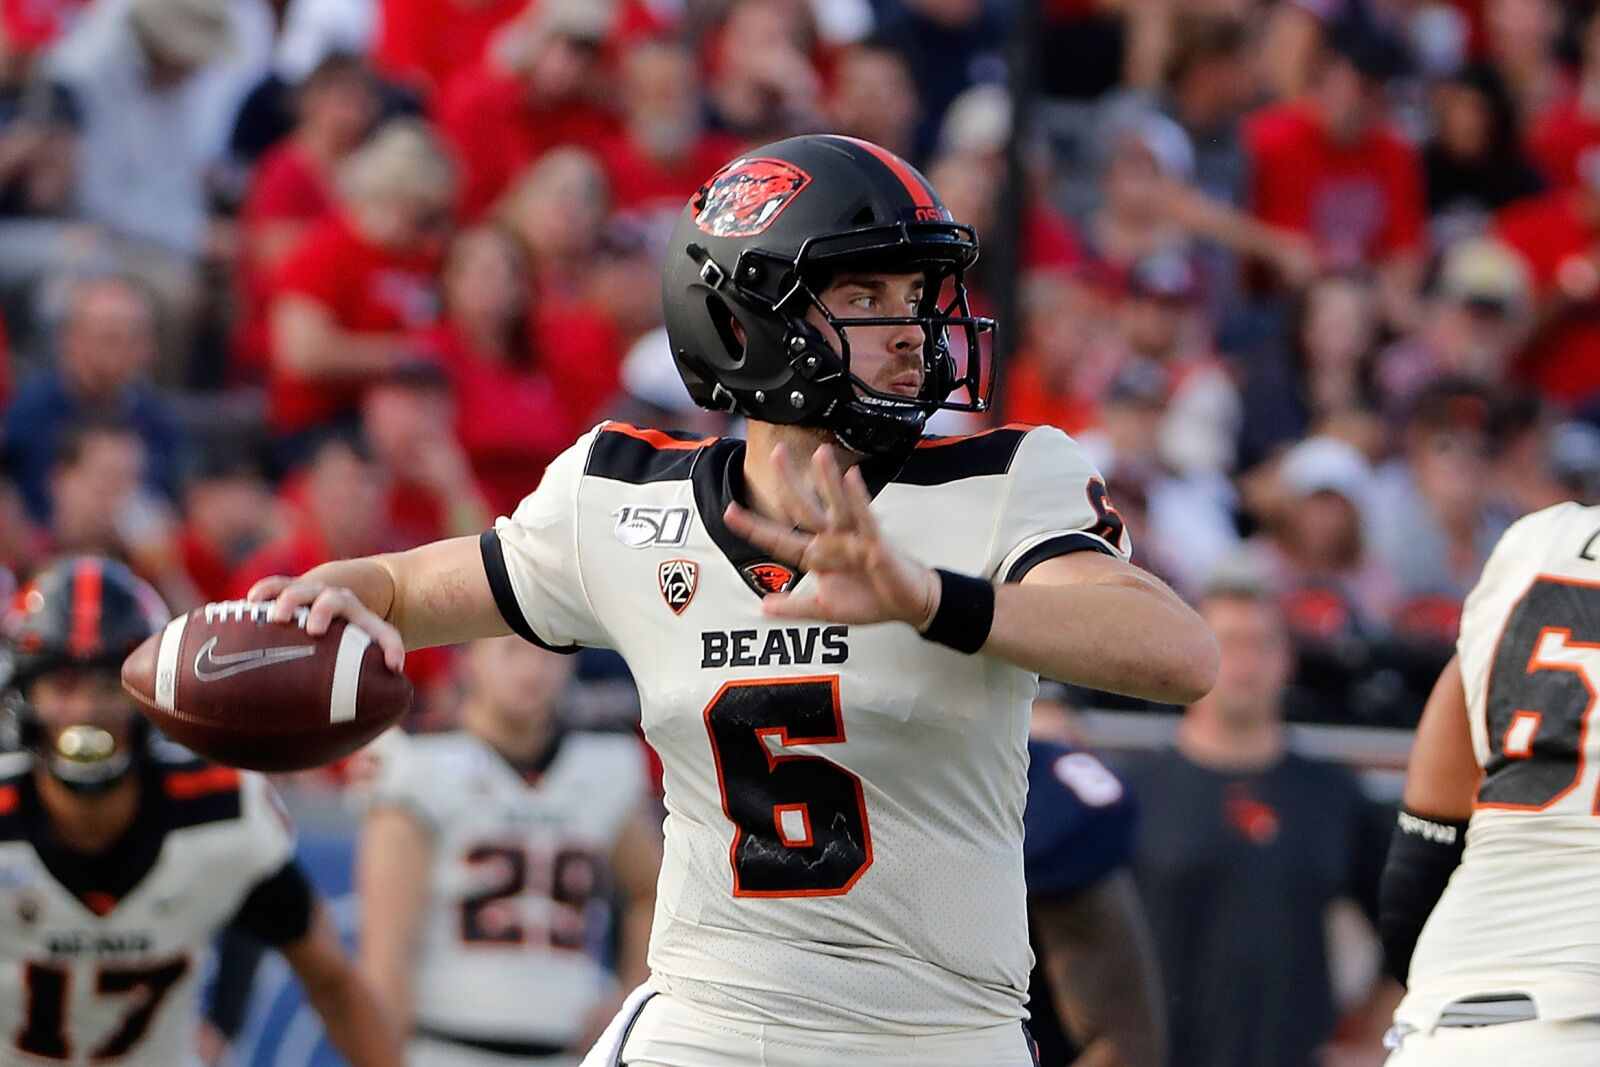 No disrespect to Minnesota or Baylor, Oregon State is college football's biggest success story